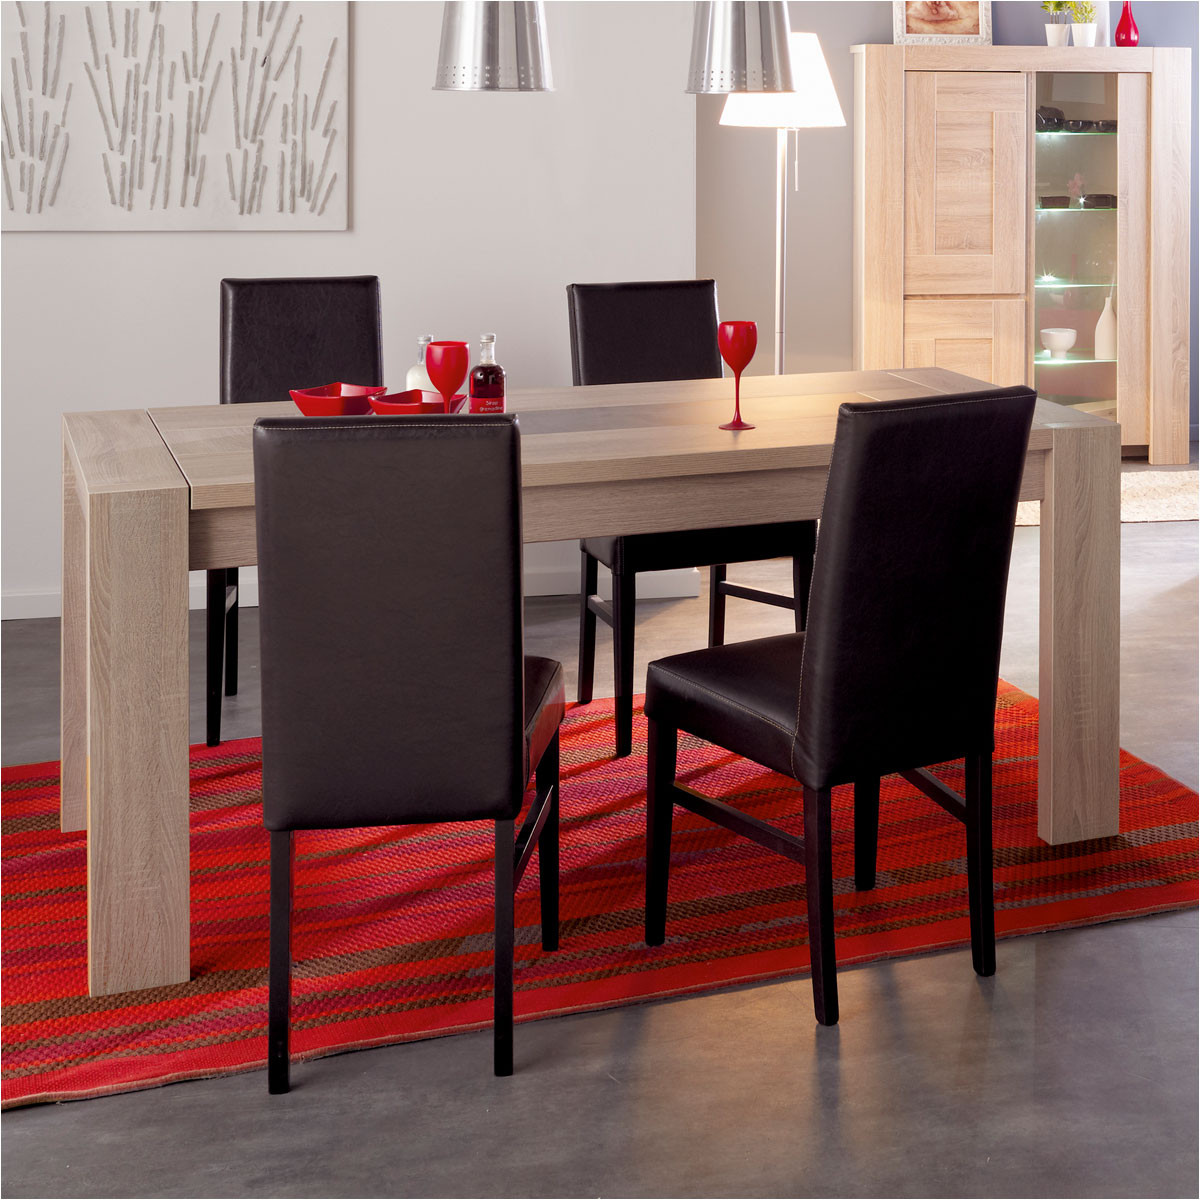 table l 240 cm buffet lubjana table pas cher auchan ventes pas. Black Bedroom Furniture Sets. Home Design Ideas